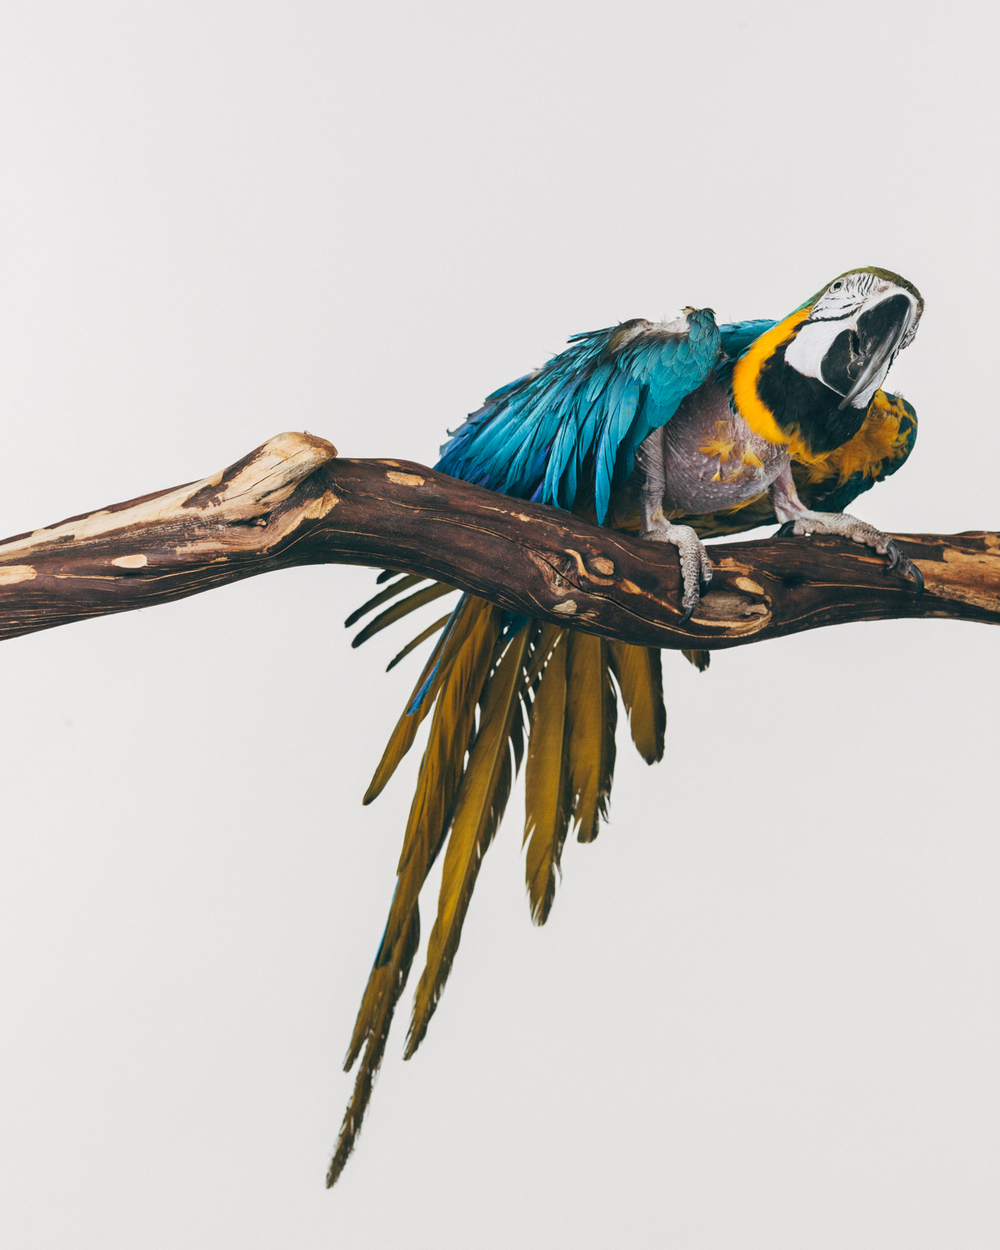 BJ    Female. Blue and gold macaw                                                       (Ara ararauna)  Age: Unkown  Rescued 3 years ago by a sanctuary in Florida. Her owners were selling their house and going to live in an RV and travel.    The owner said that BJ had previously been owned by a man in a neighboring city and he had three Macaws and two of them beat up on BJ all the time and she plucked herself naked.  They also broke one of her wings and the owner never sought veterinarian care for it.  The man would beat on her cage with a broom to get the macaws to be quiet.  The sanctuary placed her with a friend and when that friend died recently a sanctuary in Washington was called to take BJ in.